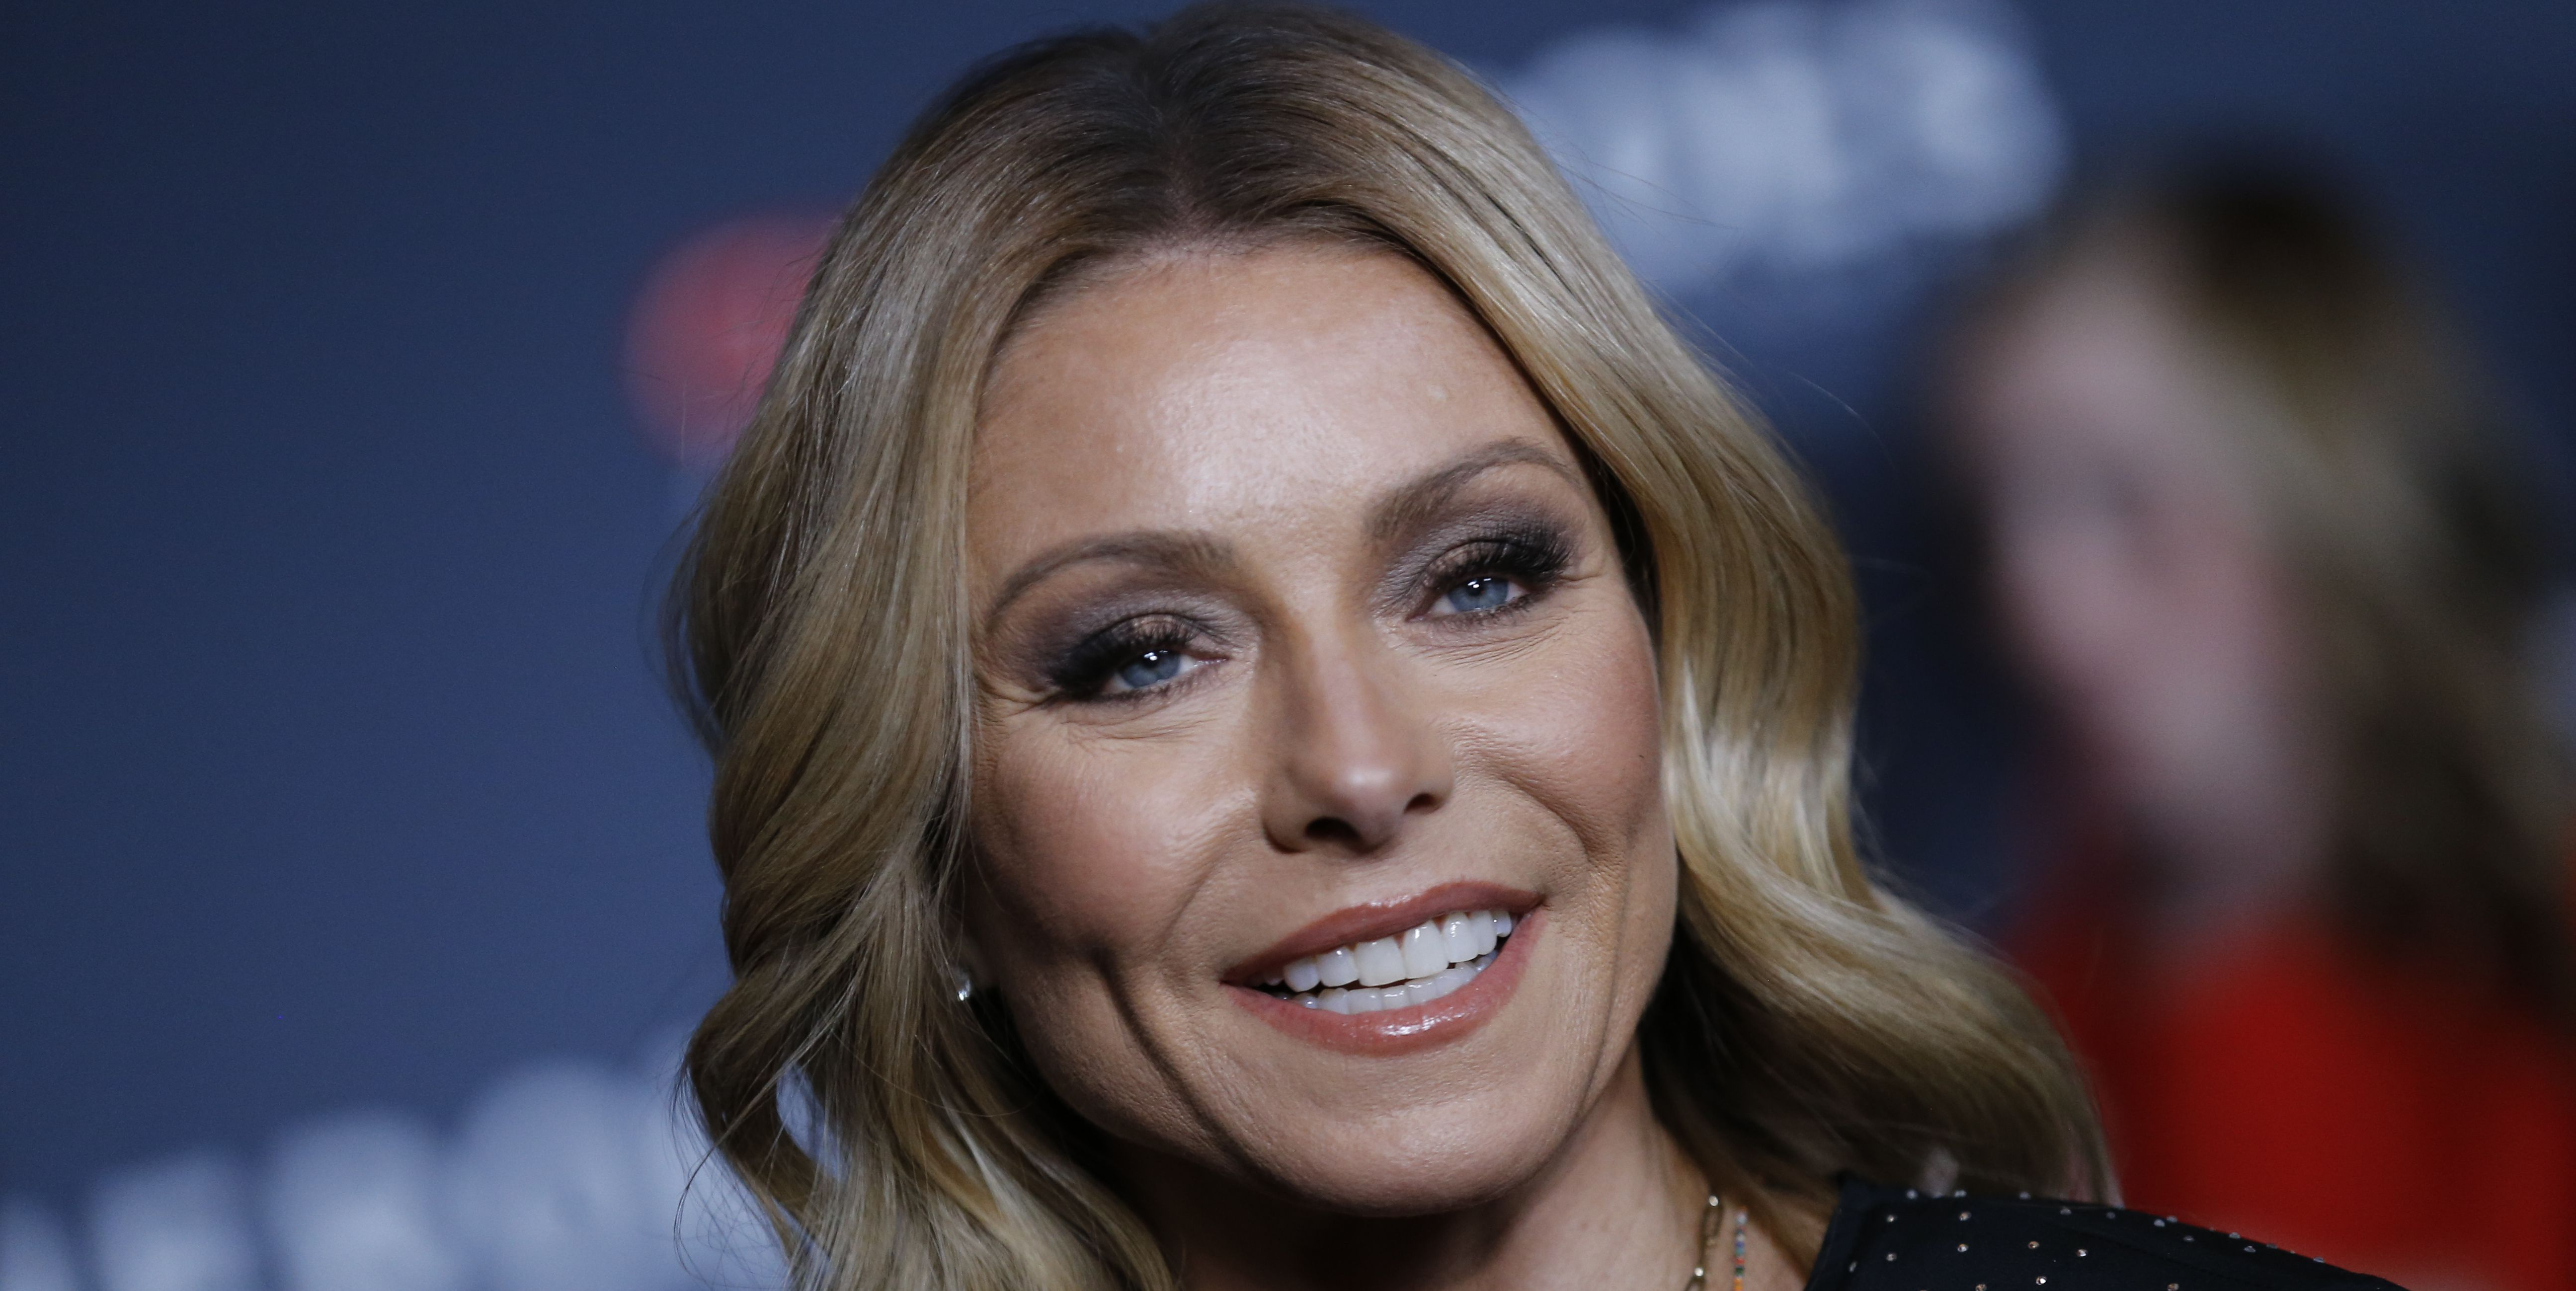 Kelly Ripa Just Turned 50 and She Credits Her Health to